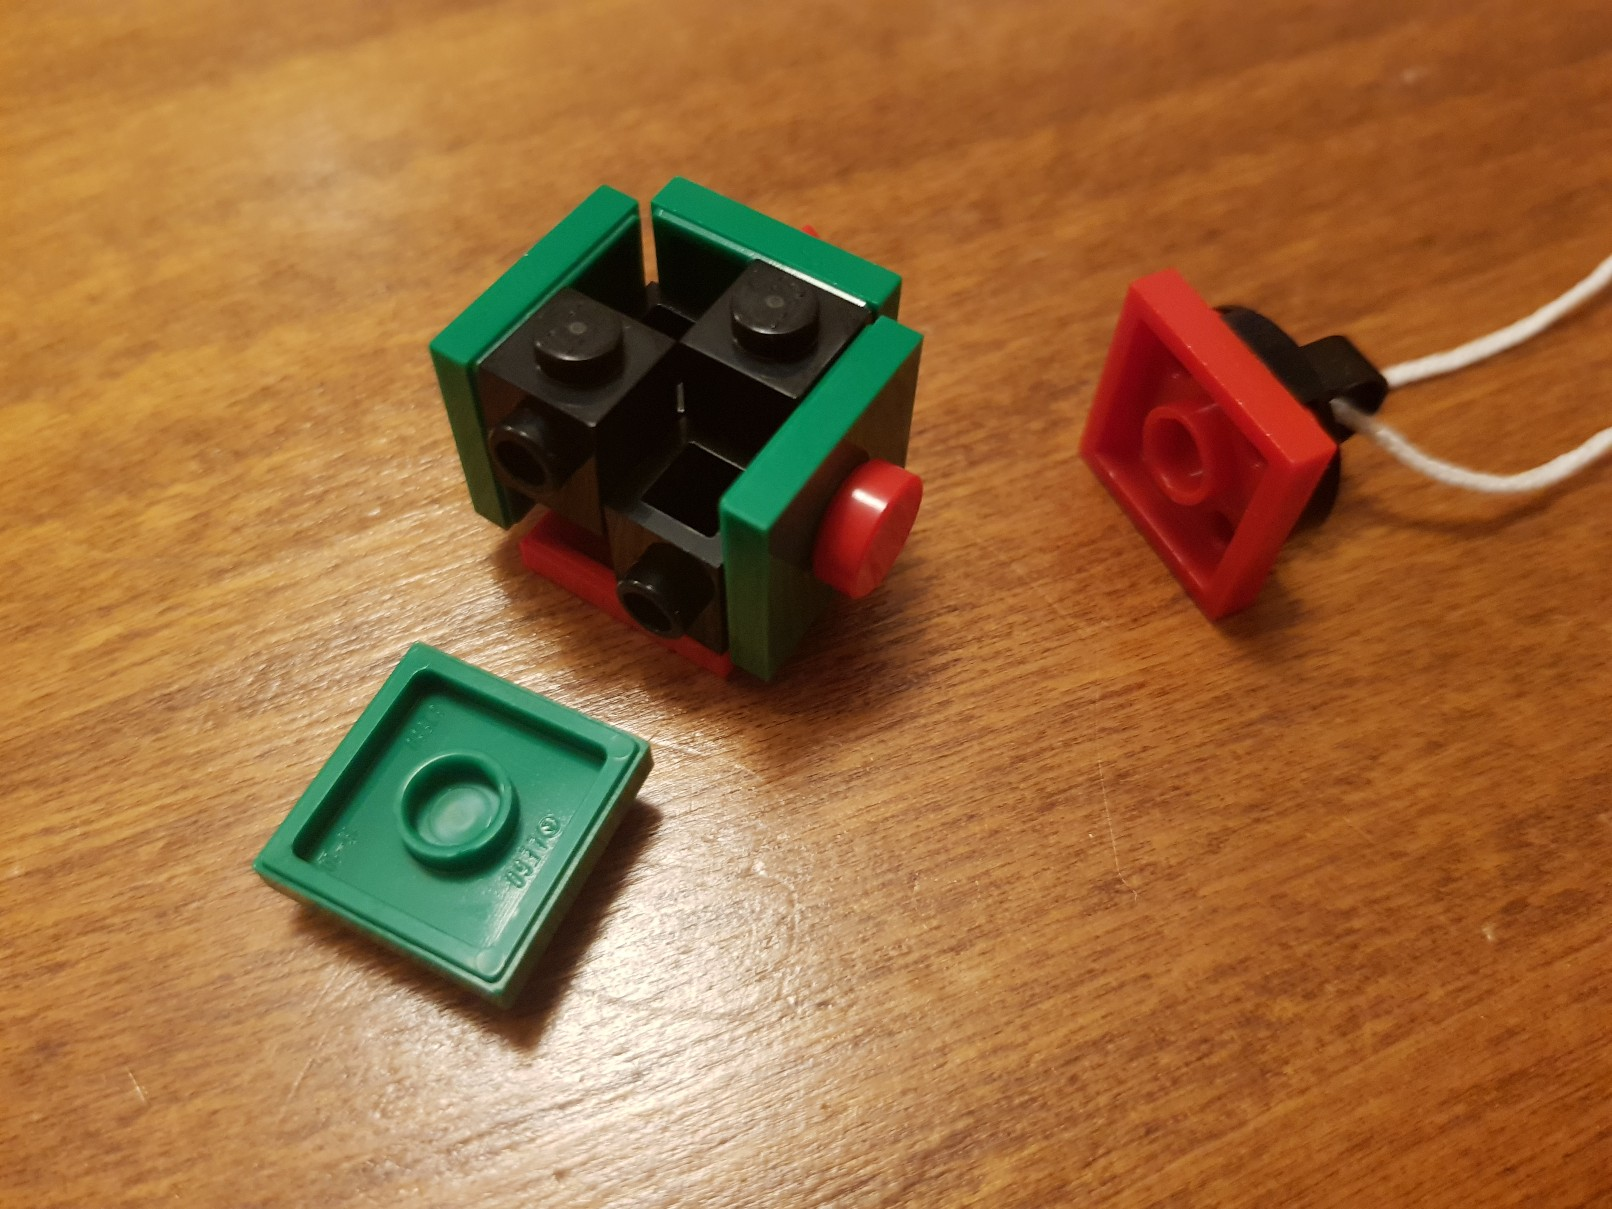 lego moc christmas baubles ornament small ball parts 2